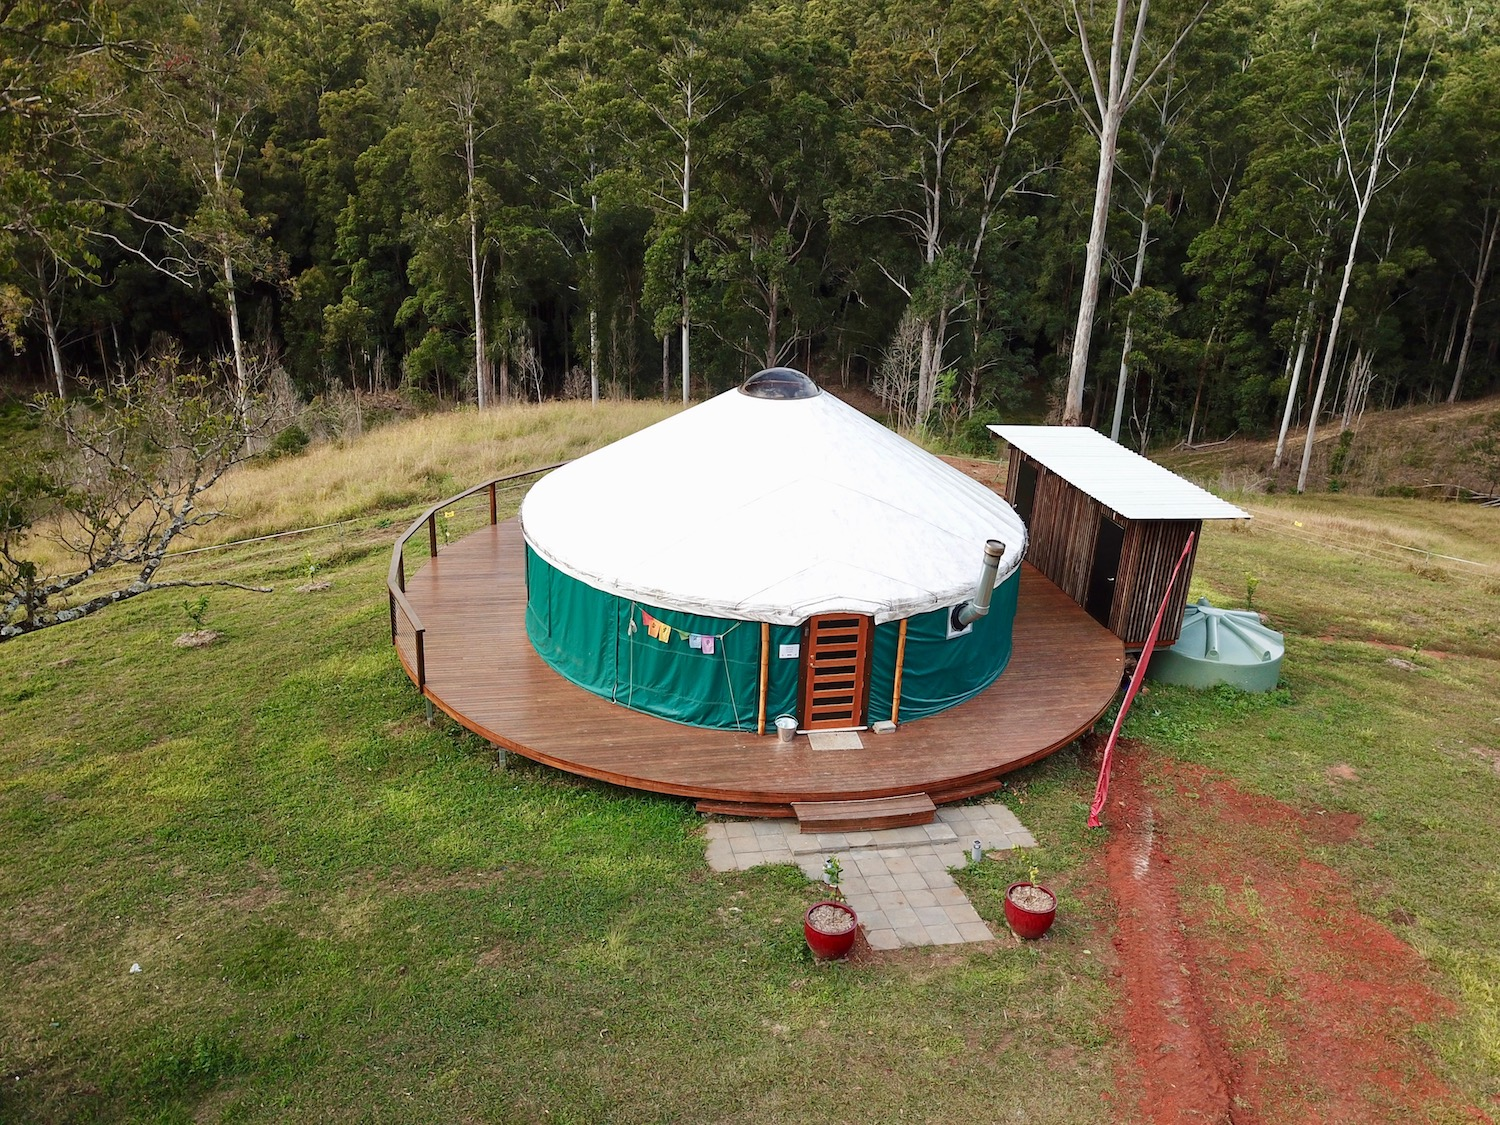 - An ancillary building alongside the yurt houses compost toilets for guests.